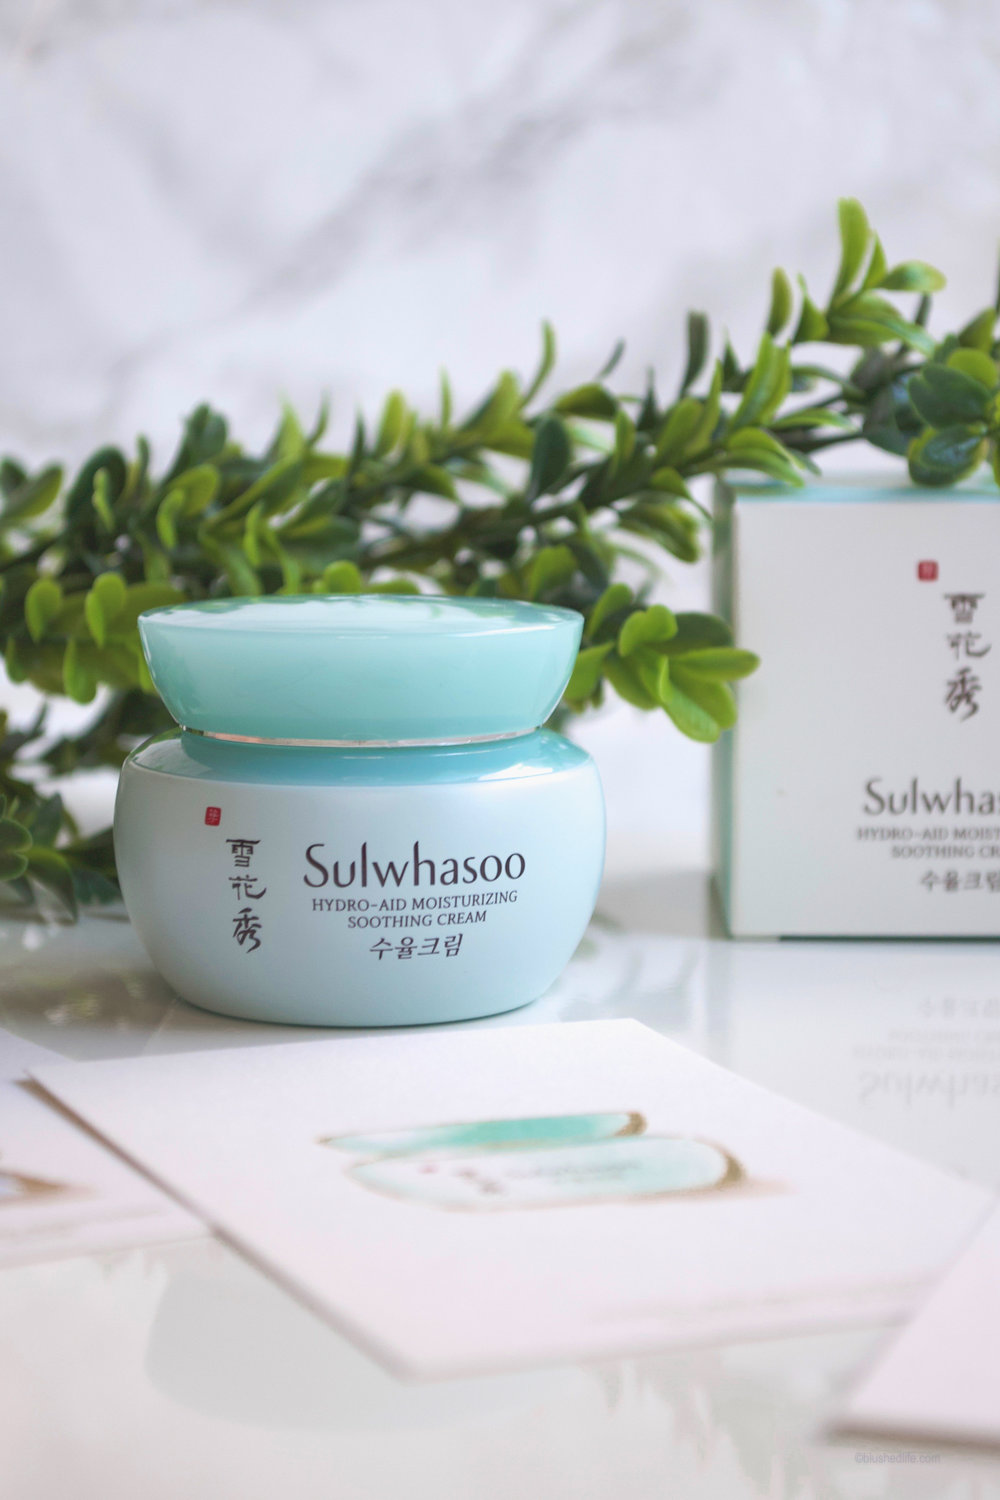 Sulwhasoo Hydroaid Moisturizing Soothing Cream Review_DSC_4225-2.jpg